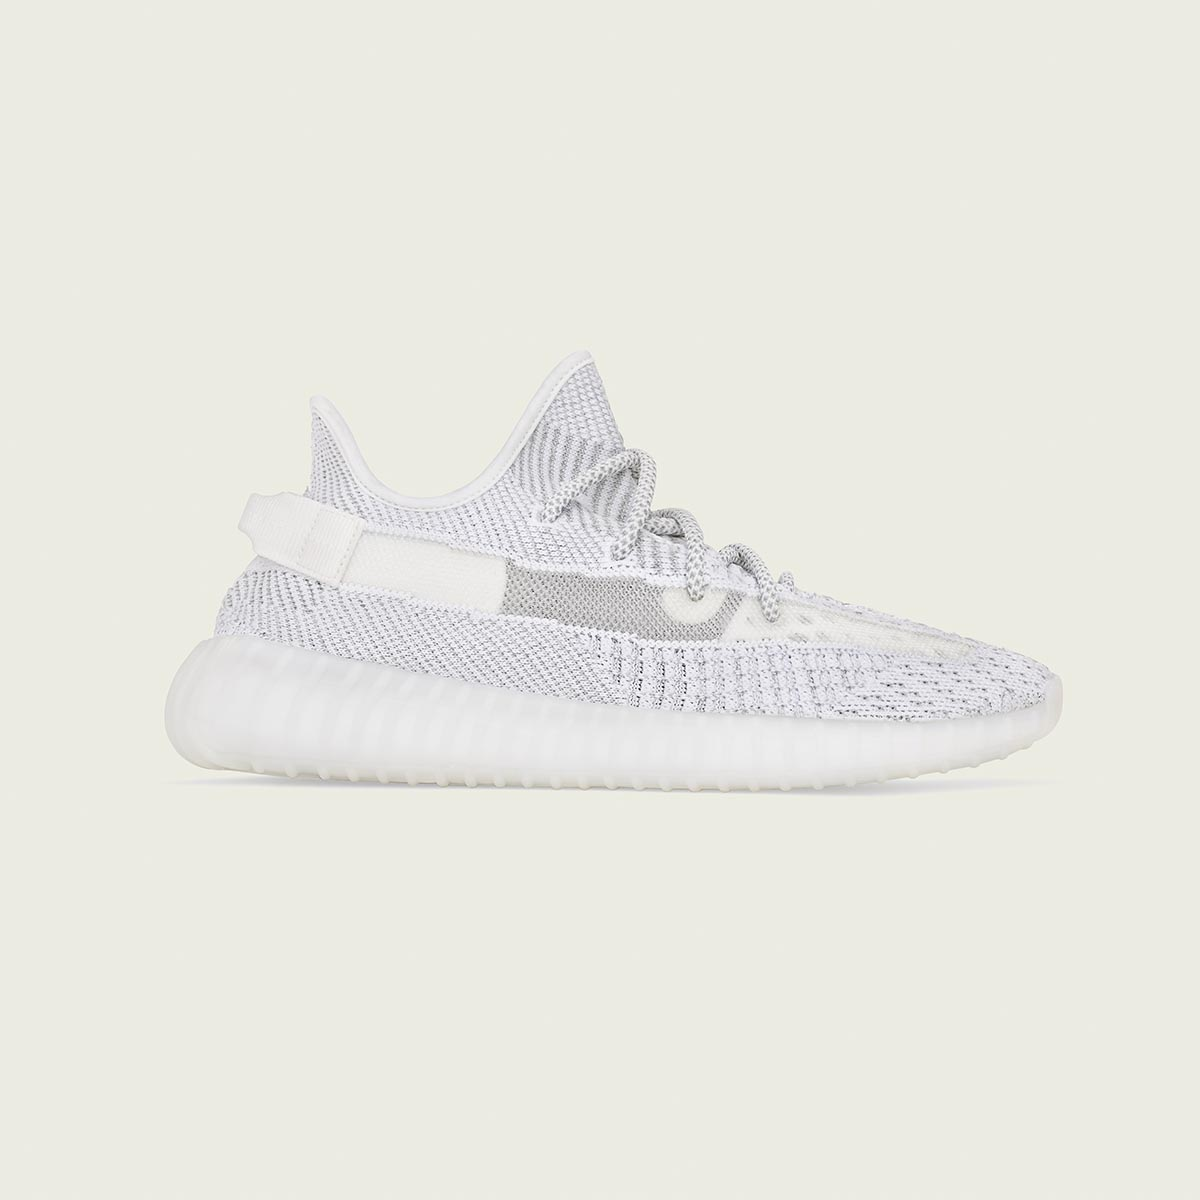 adidas YEEZY BOOST 350 V2 Static | SOLD-OUT